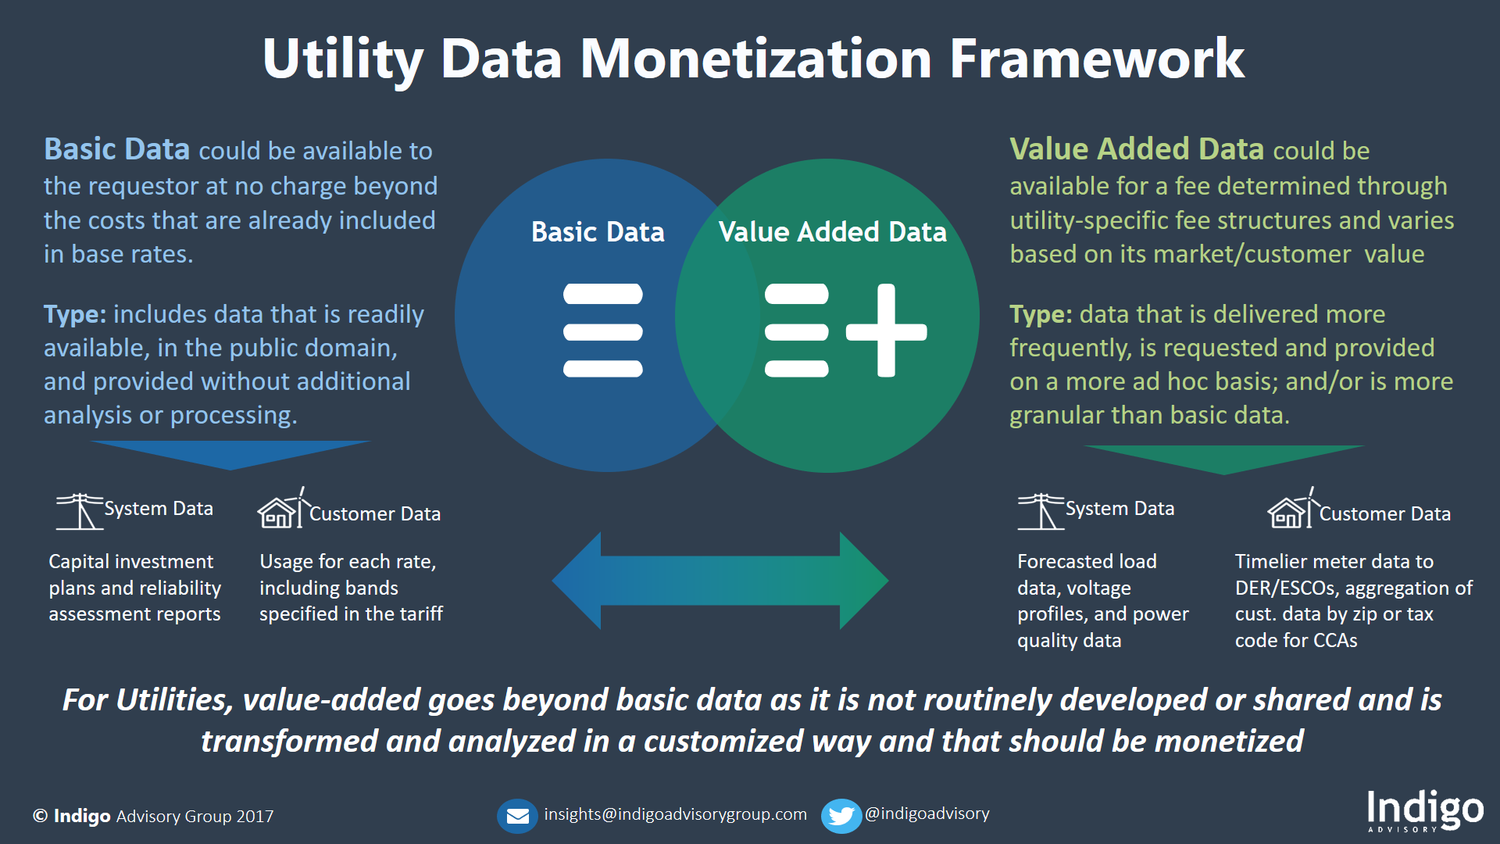 Monetizing Utility Data - The 'Utility Data as a Service' Opportunity